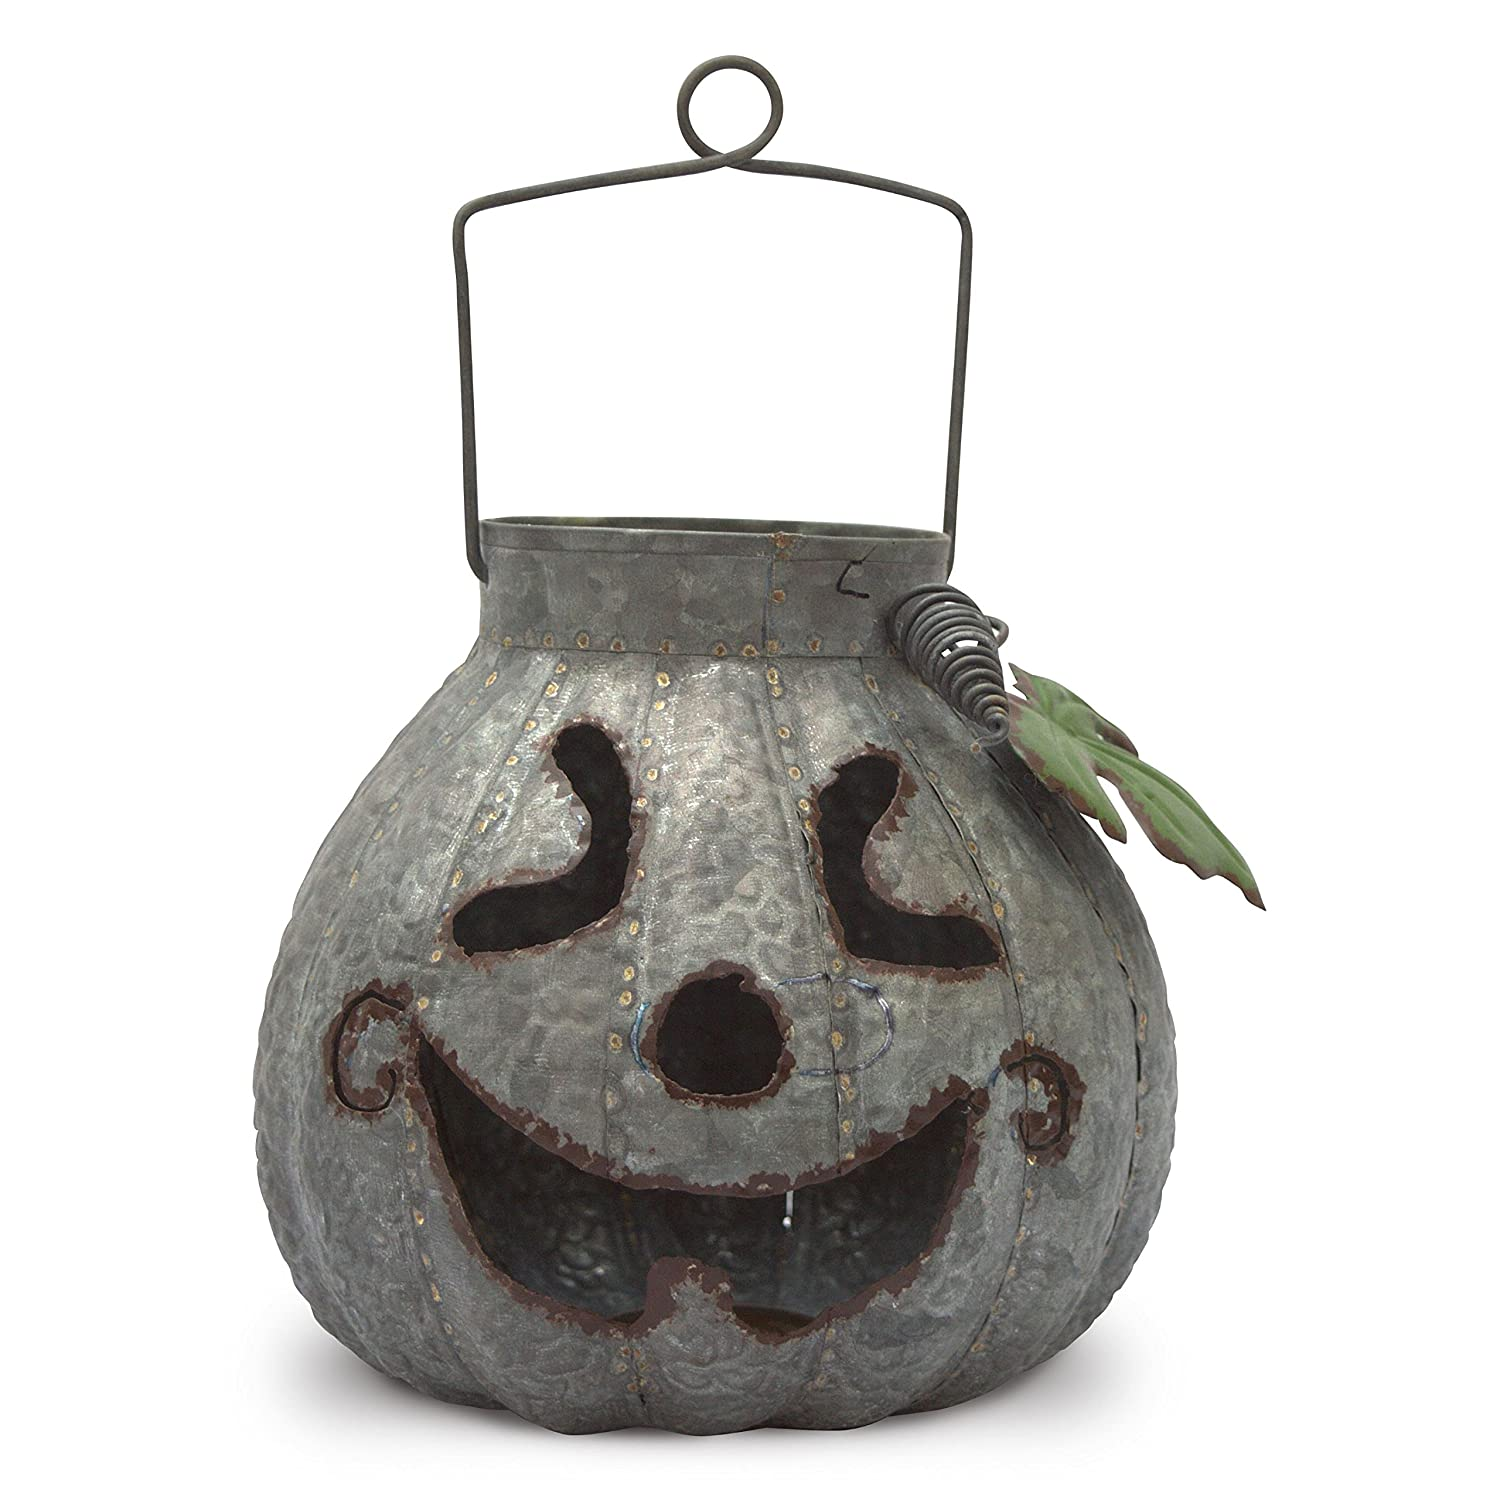 Halloween Lantern, Traditional Pumpkin Shape for Outdoor or Indoor Use Rustic Garden